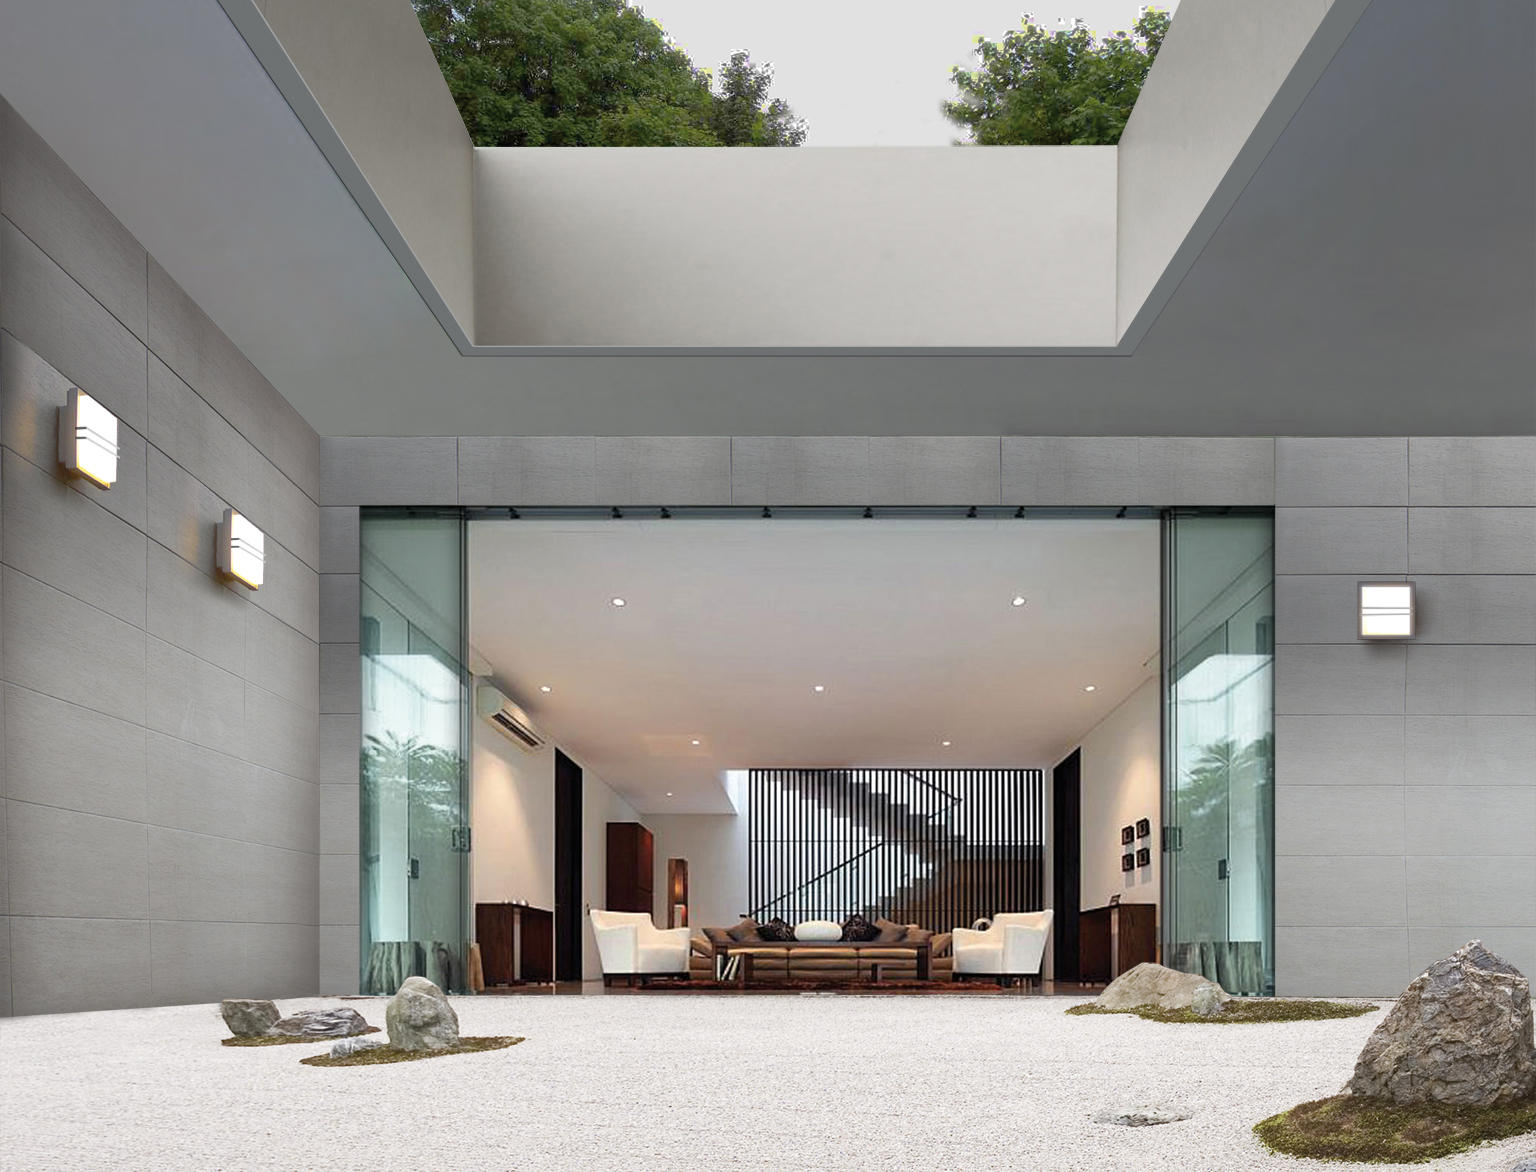 ZEN SQUARE WITH GRILL Wall lights from Simes Architonic